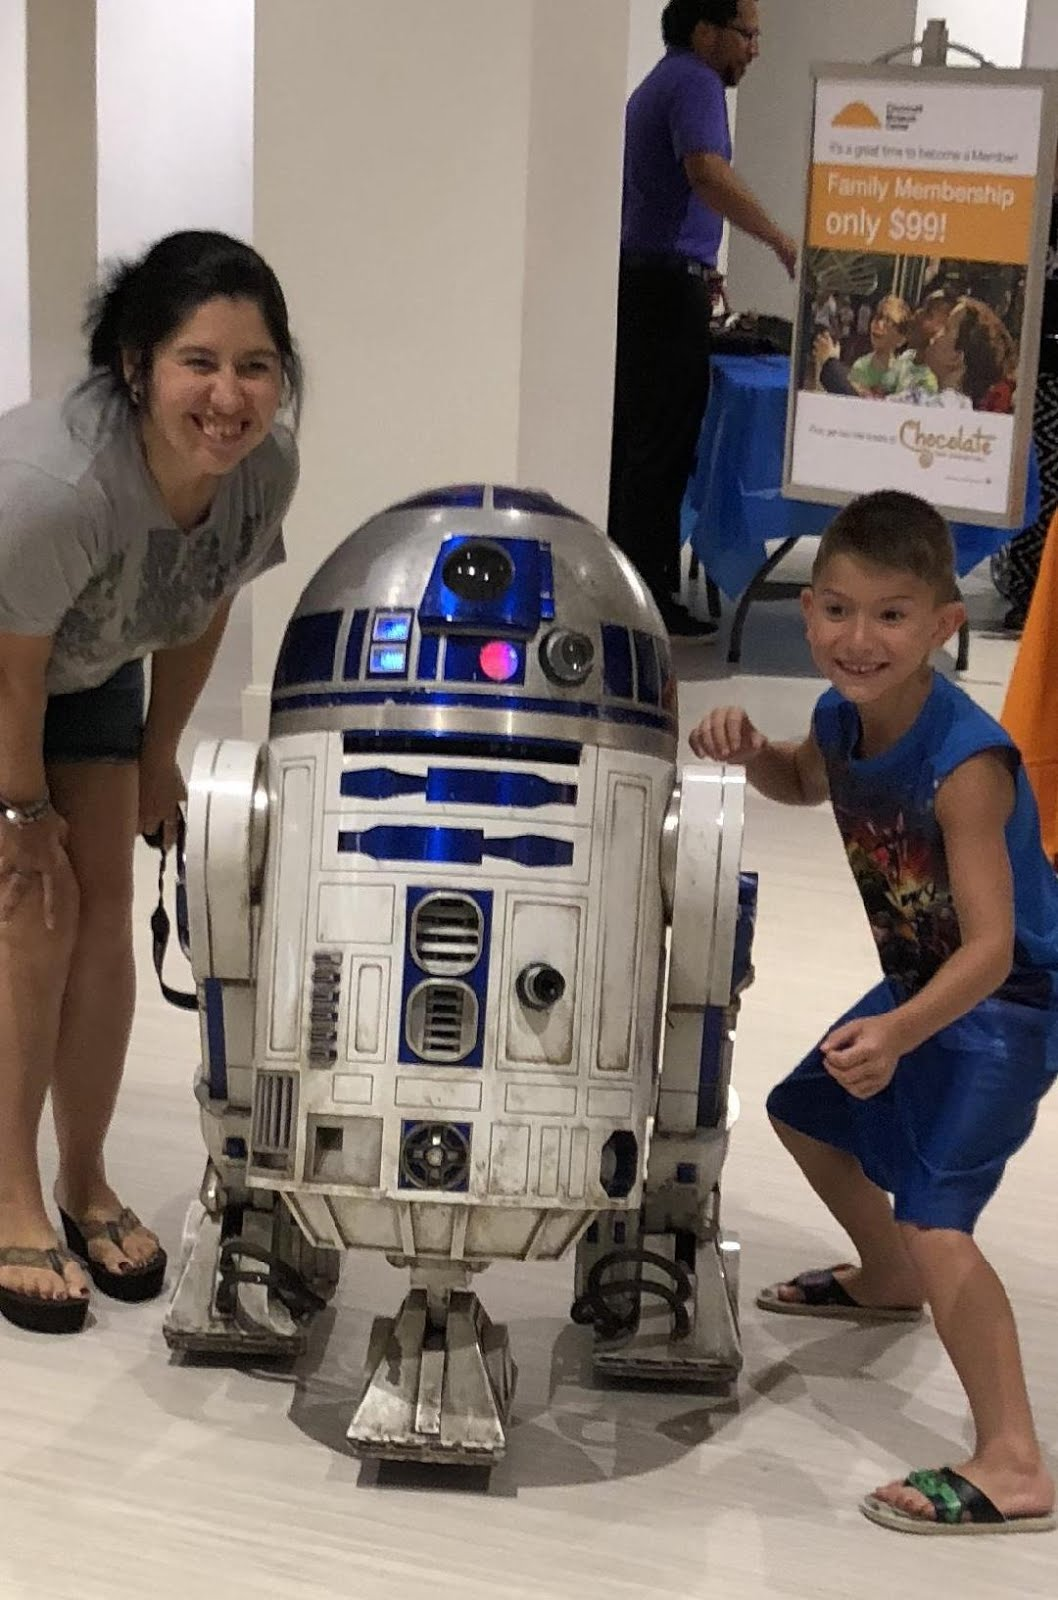 My sister, her son and R2-D2